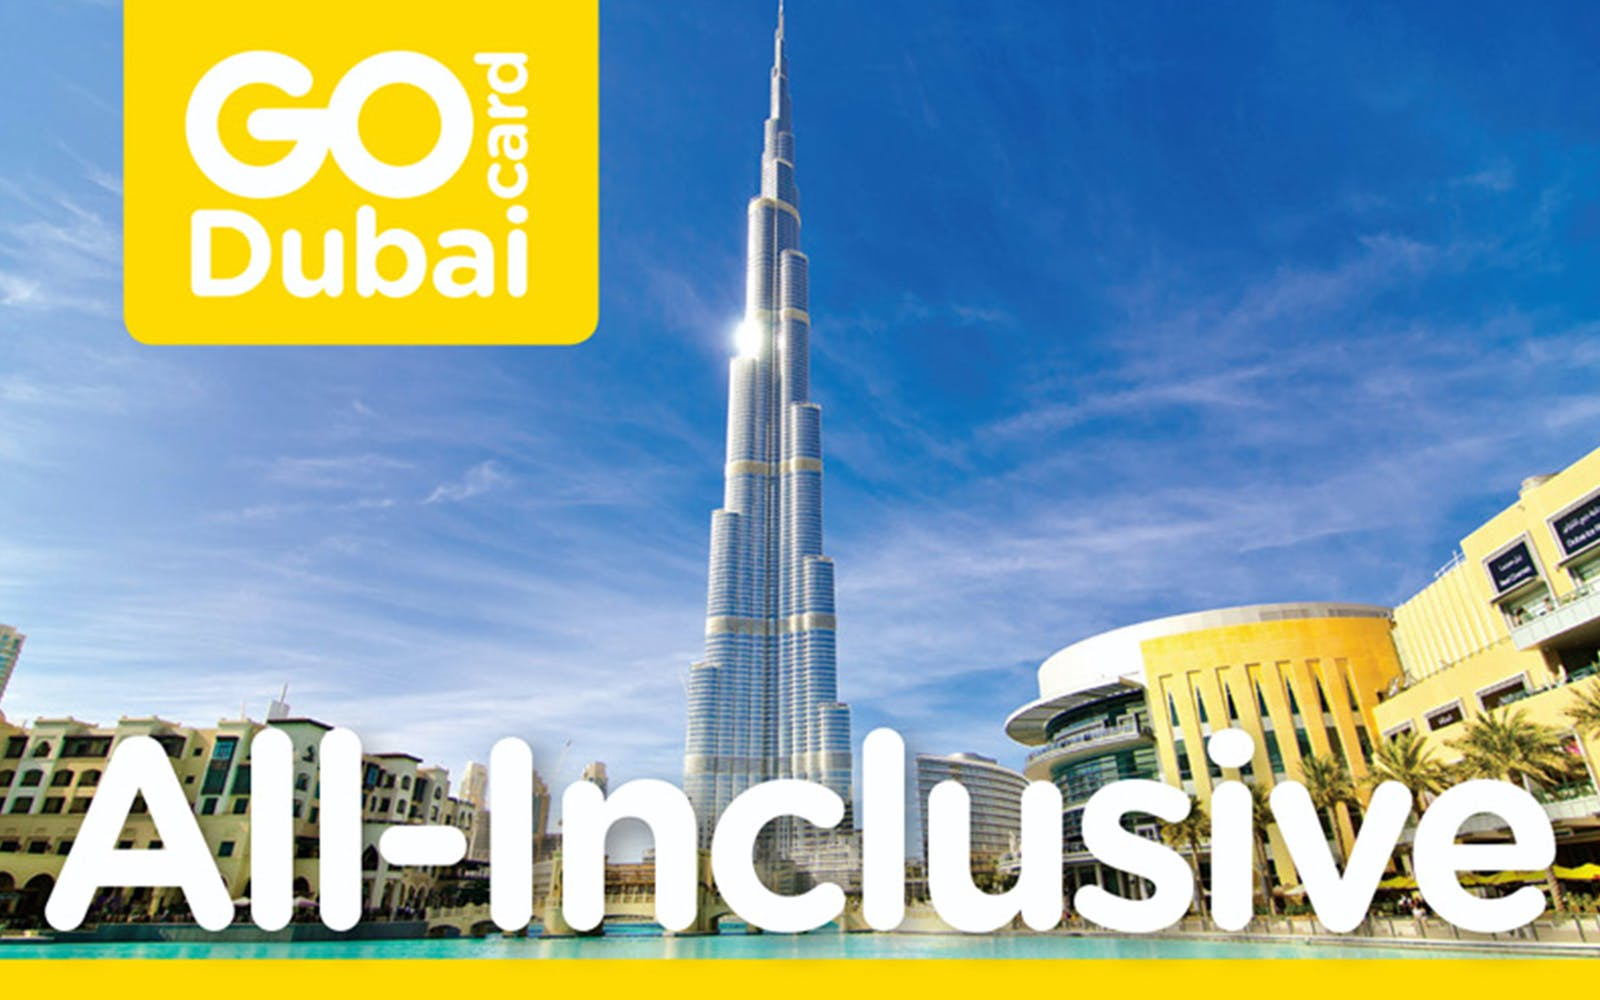 Go Dubai All Inclusive Pass